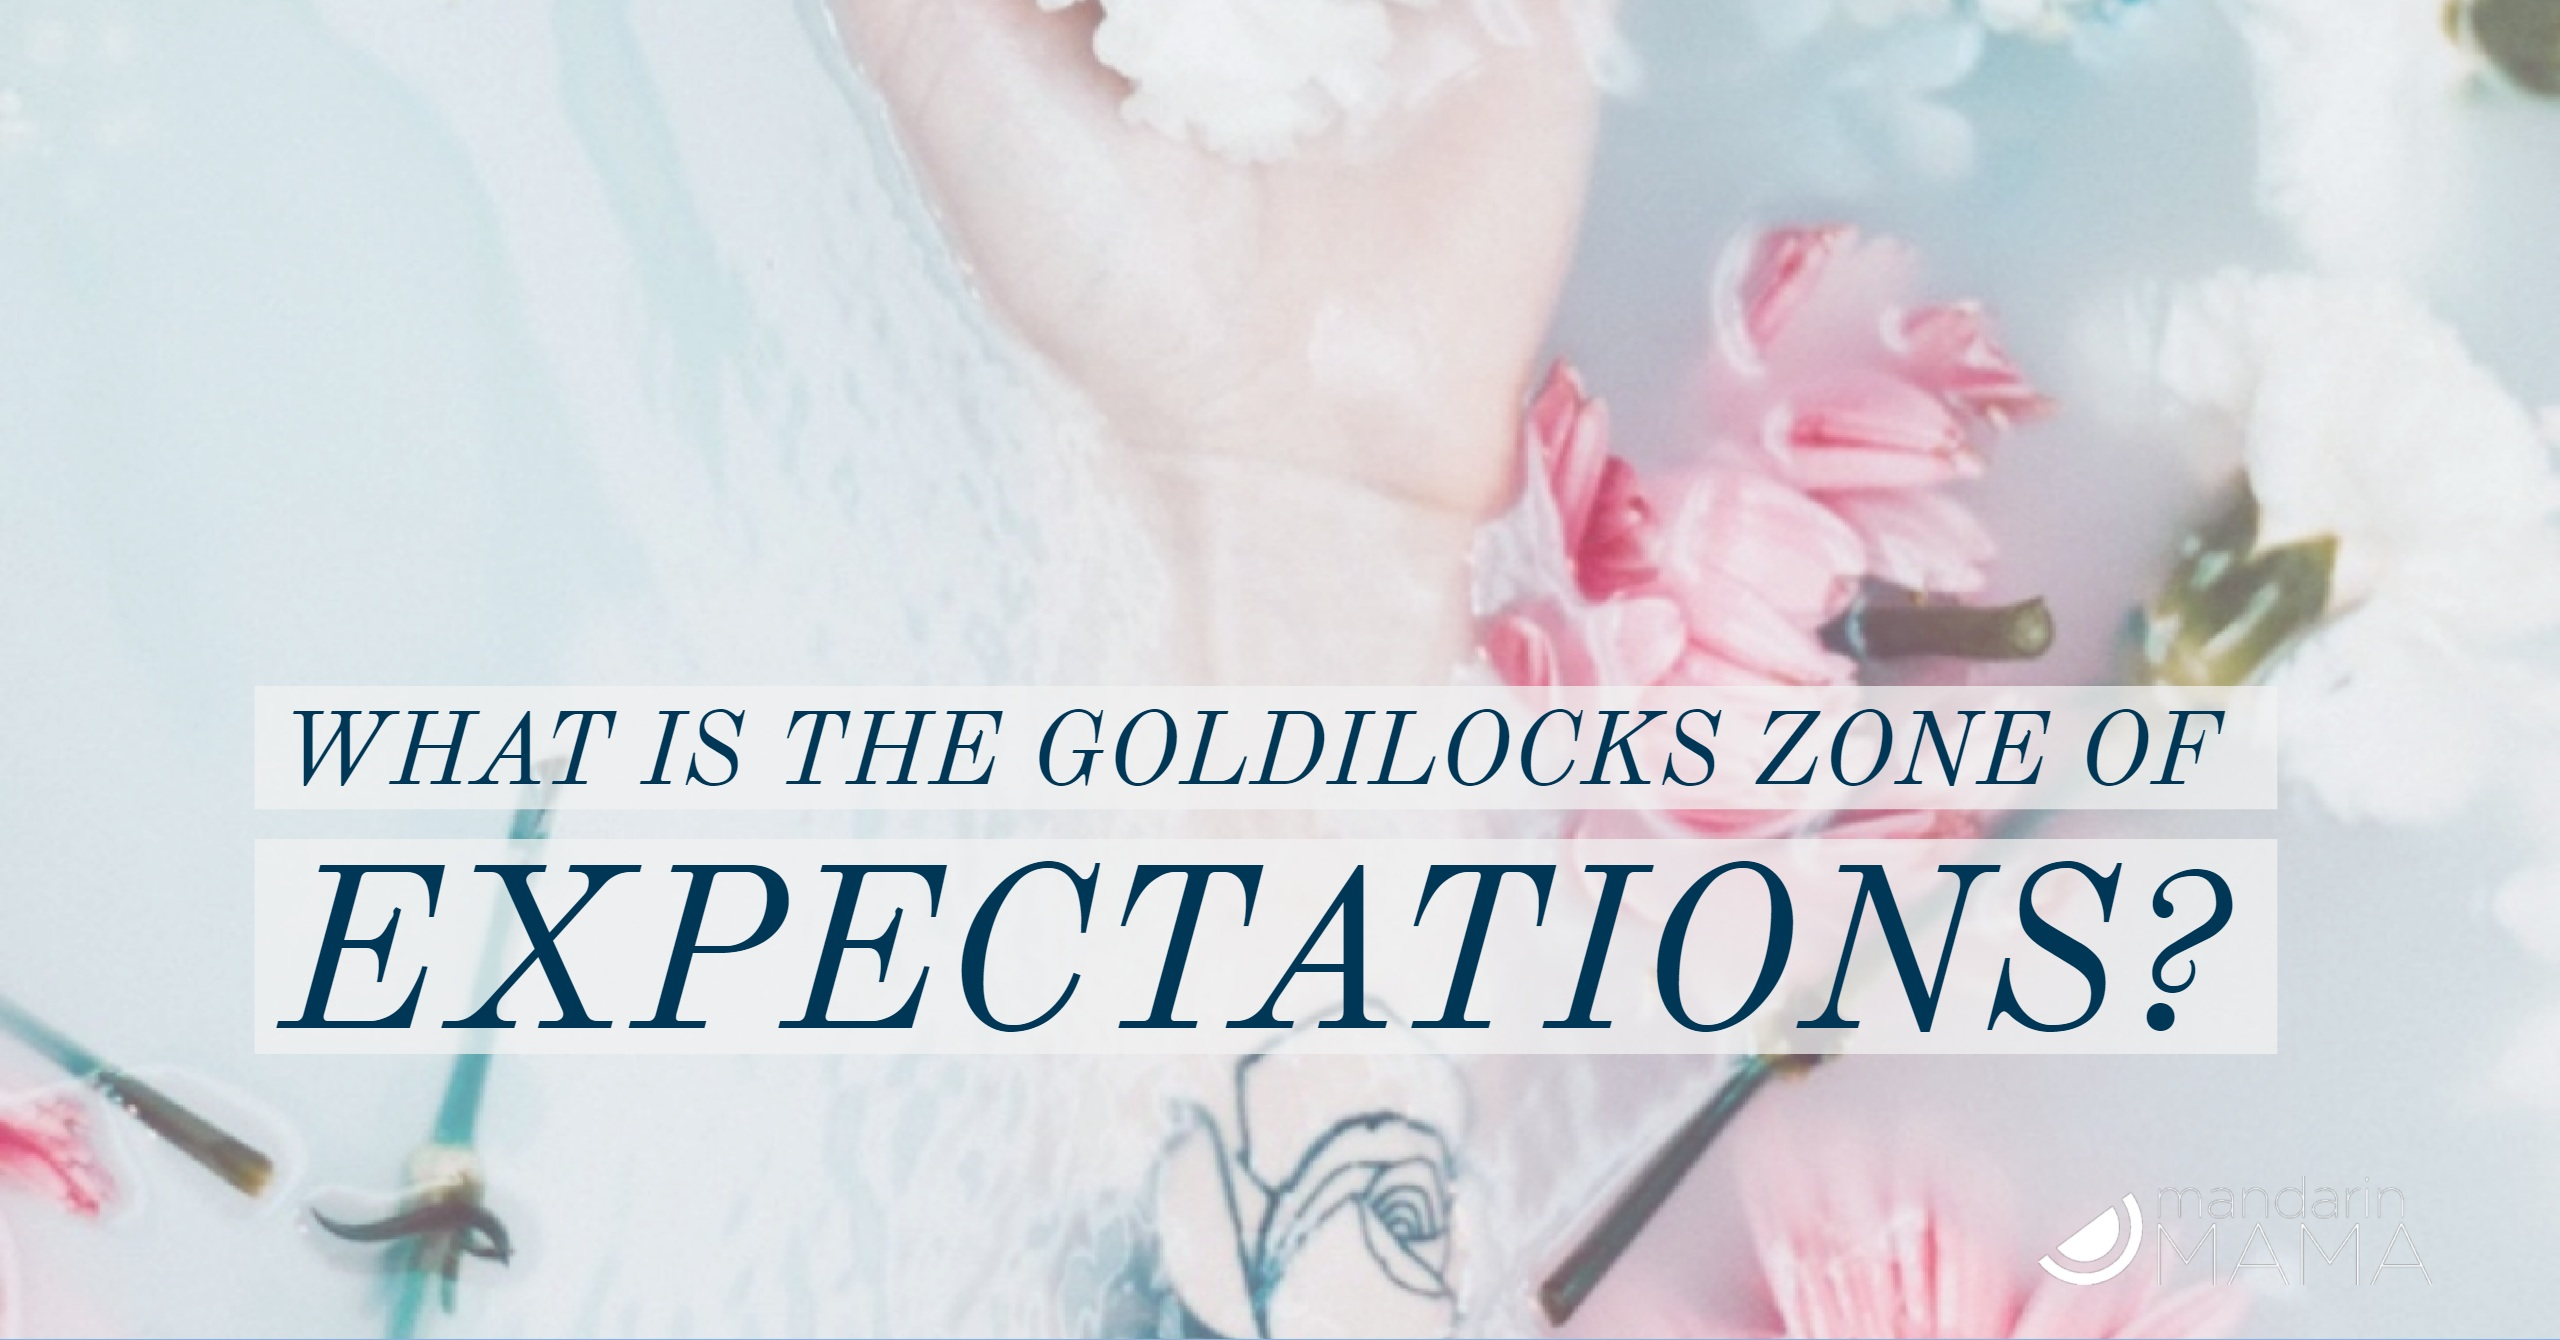 What Is the Goldilocks Zone of Expectations?